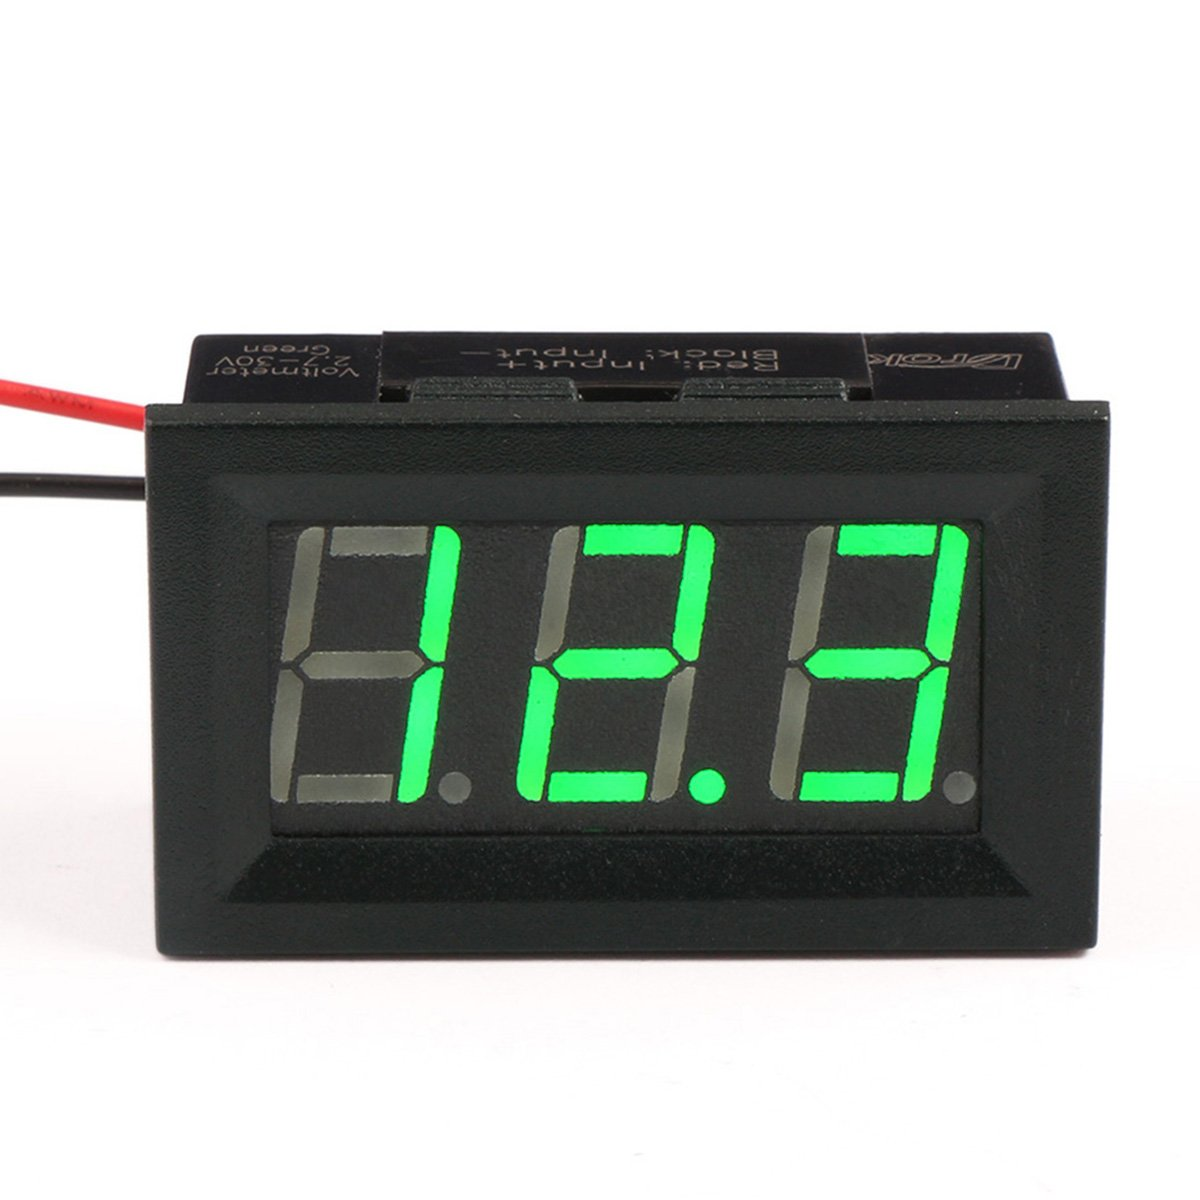 Voltmeter Gauges Automotive Voltage Indicator Drok 056 Dc 3 30v Digital Tester Gauge Green Bright Led Display